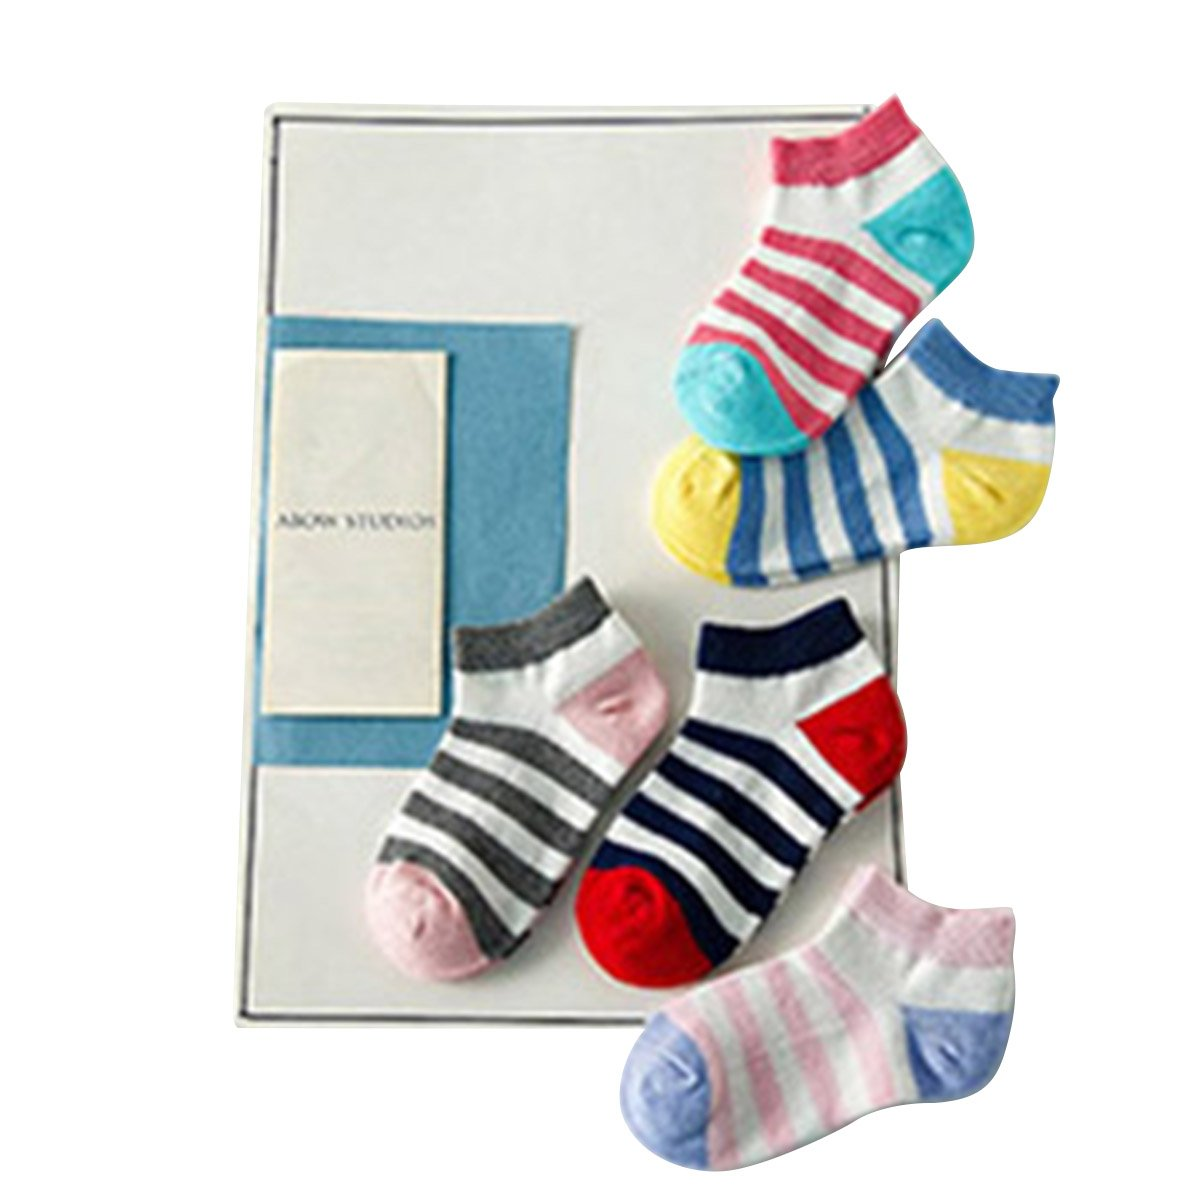 5Pairs Children Cotton Socks Polka Dots Plain Stripes Sock For 1-10Year Girl Boy 915#